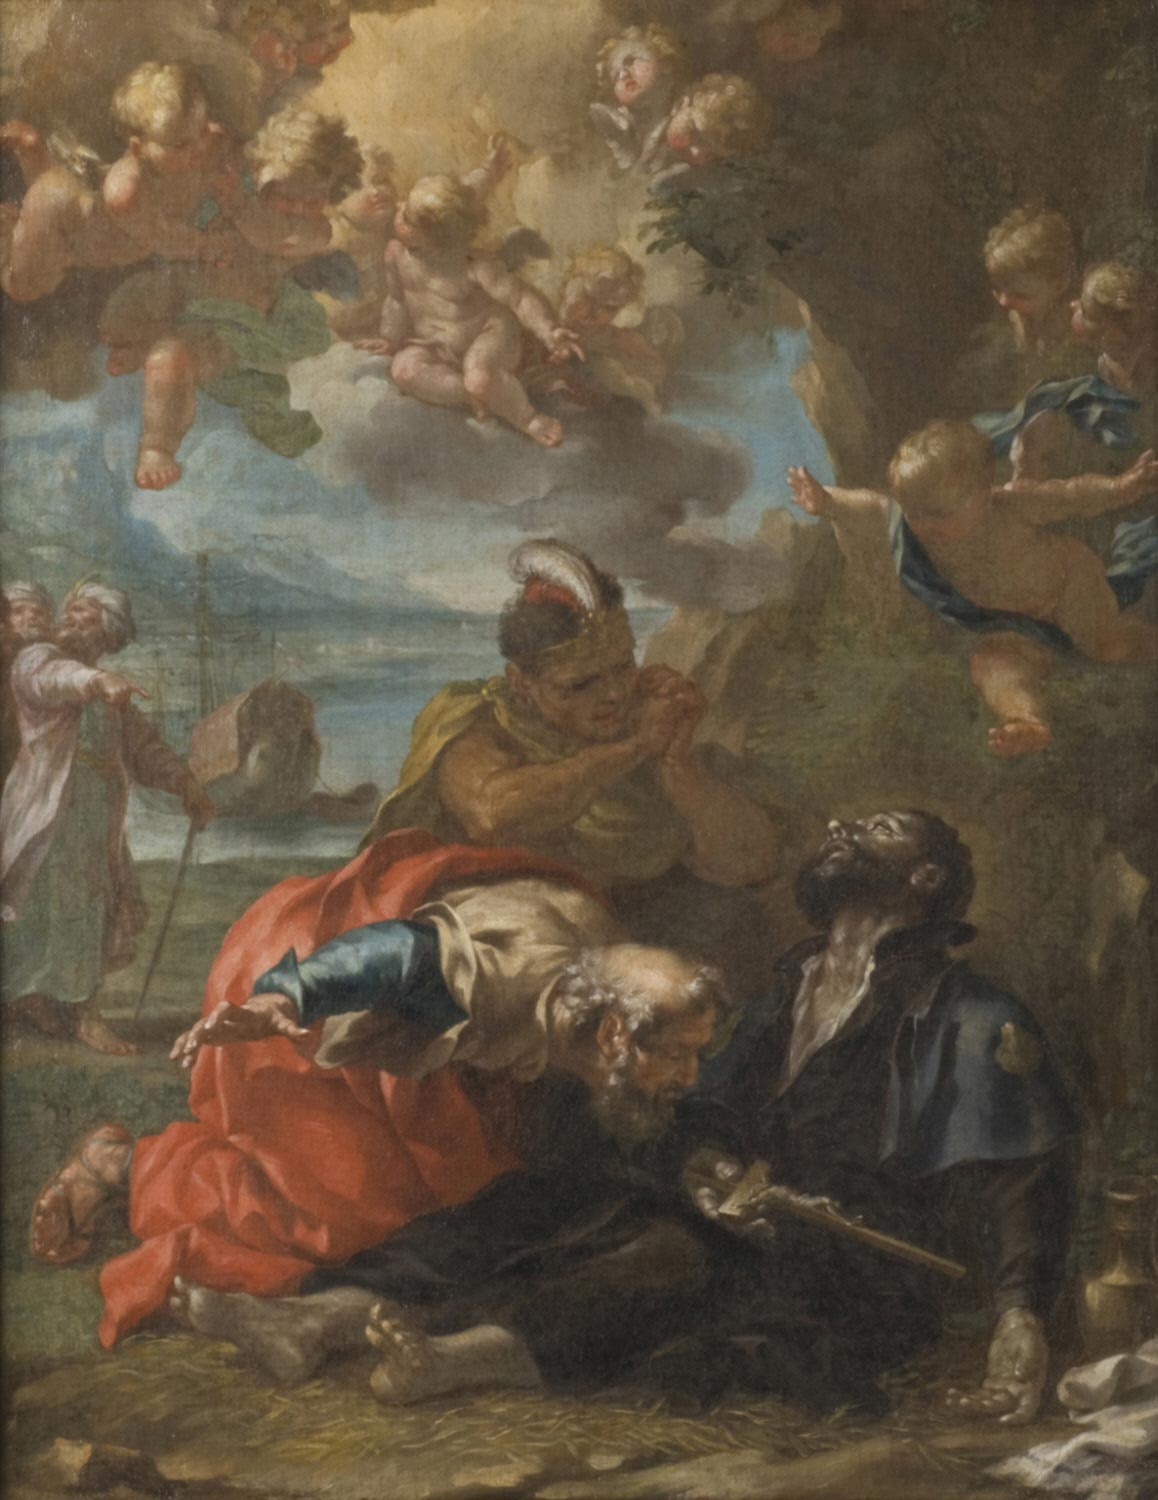 The Death of Saint Francis Xavier